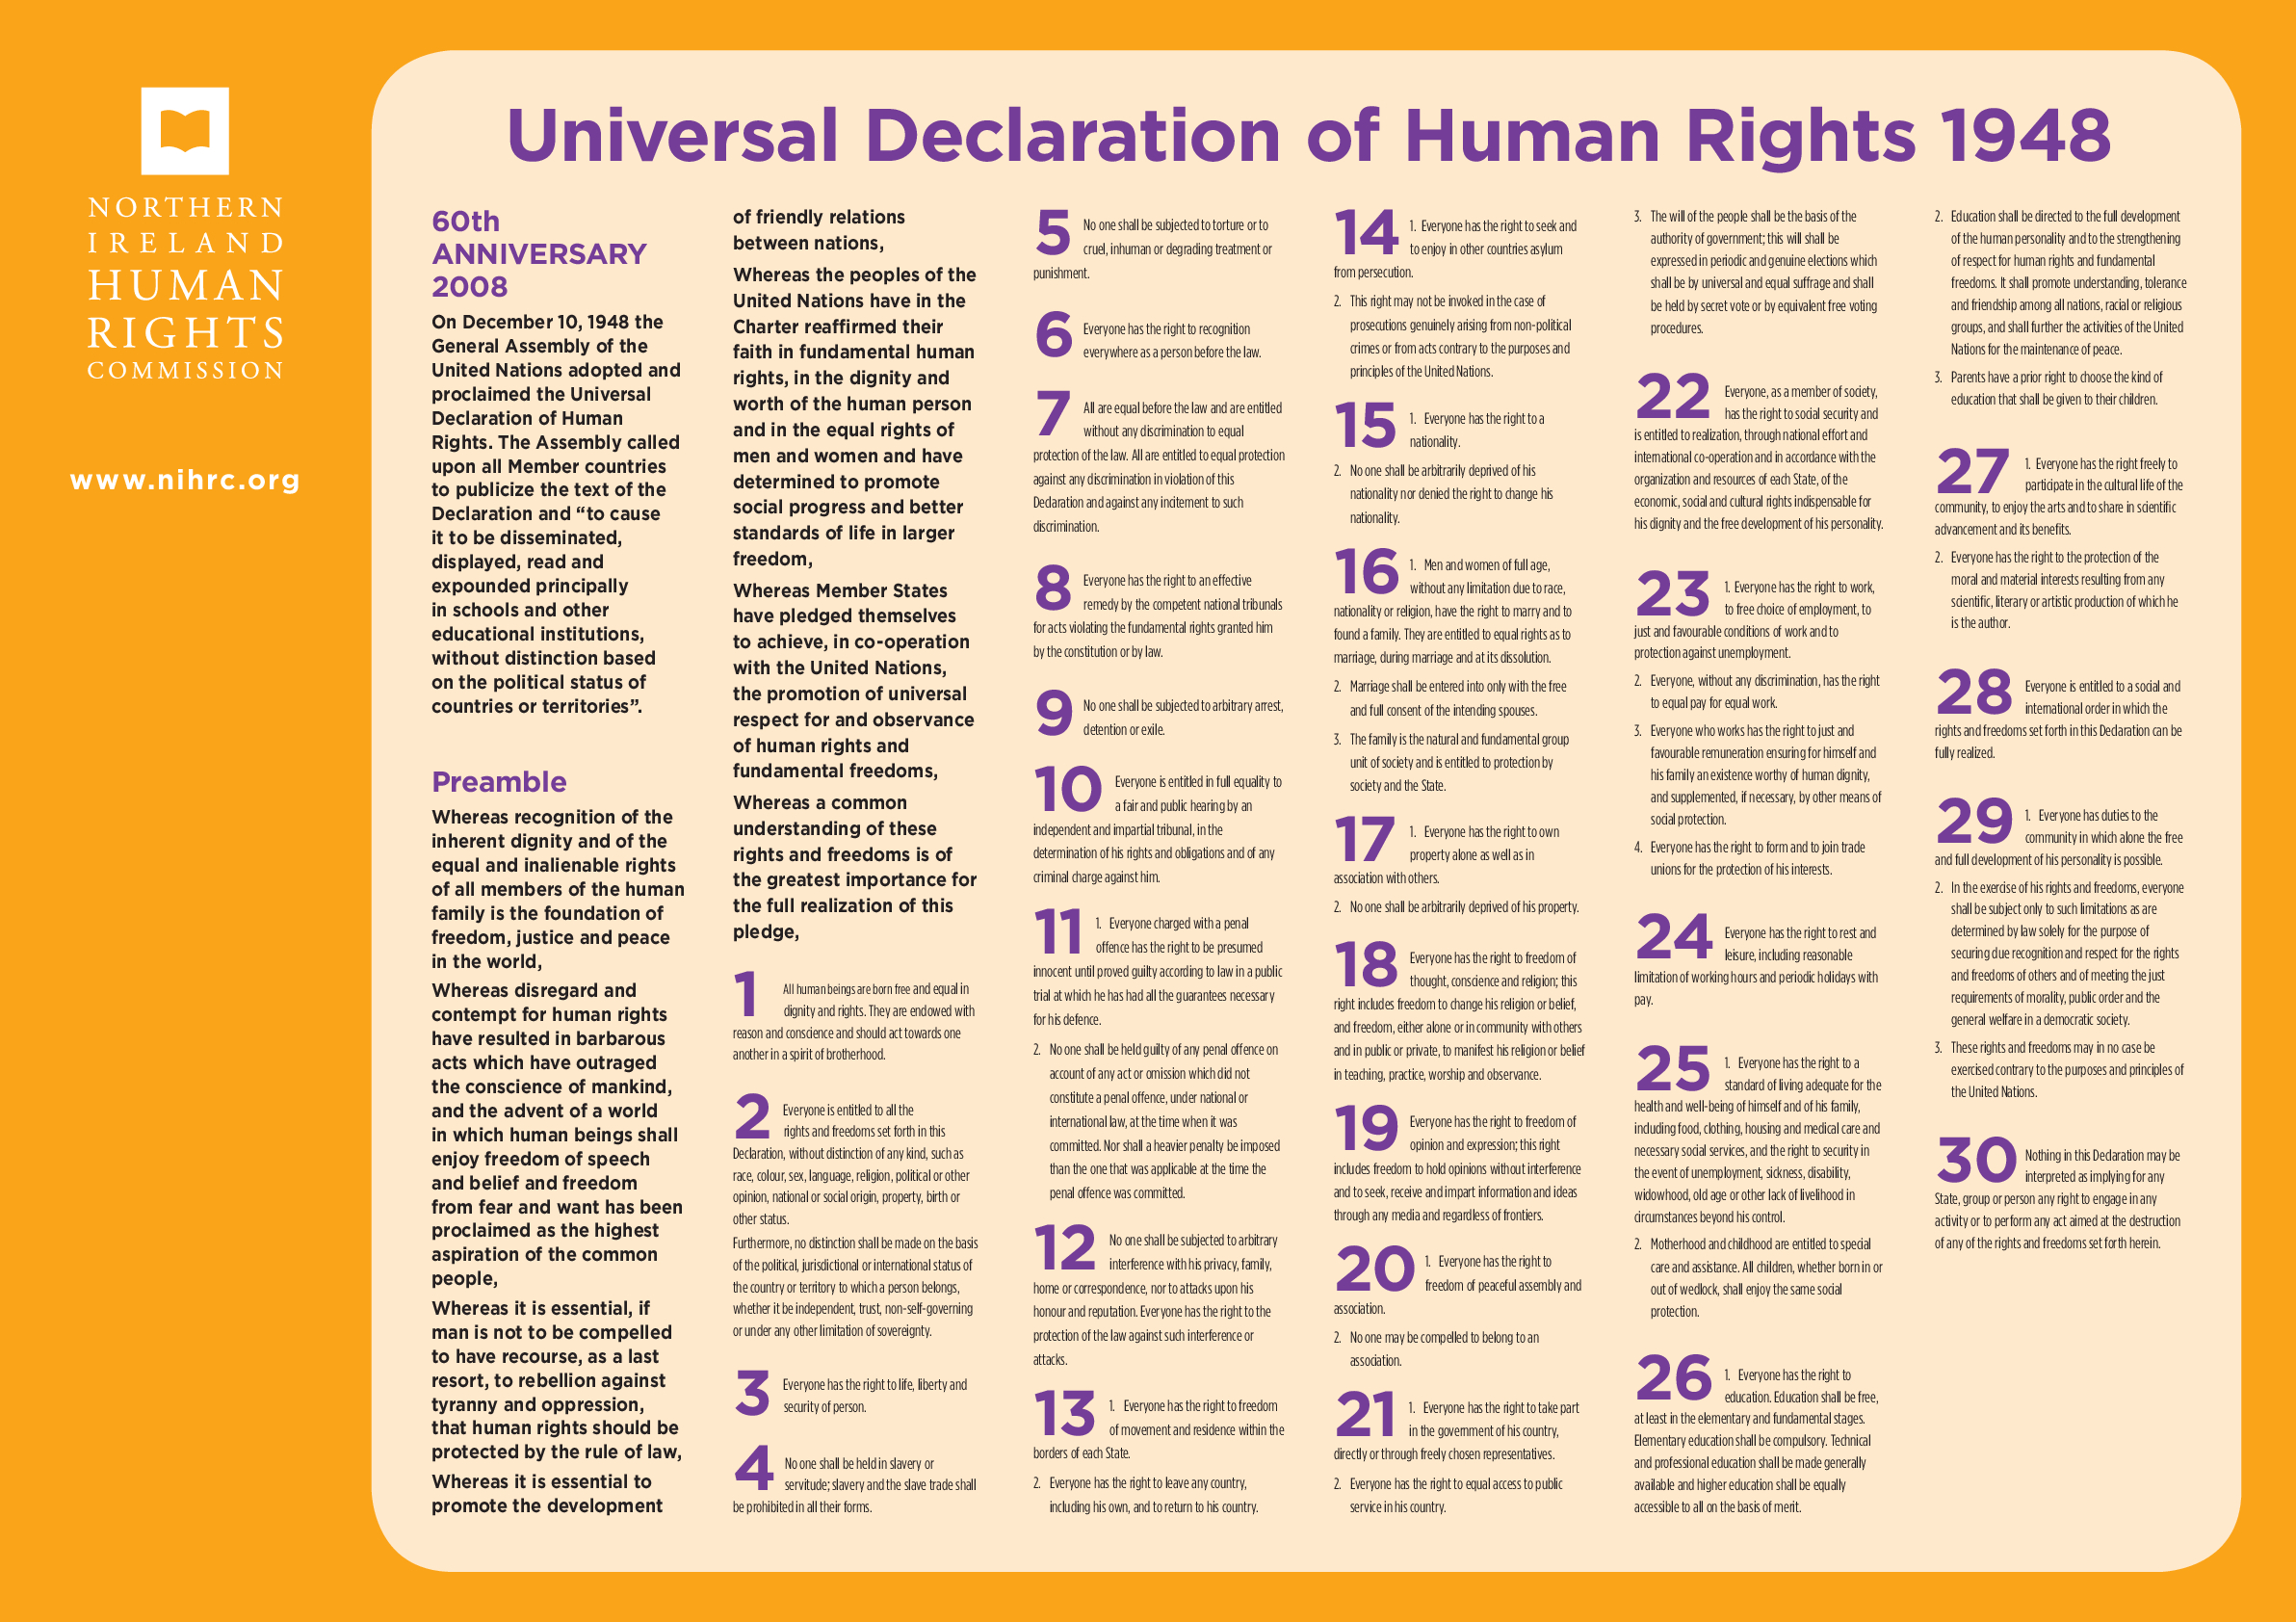 Universal Declaration of Human Rights (UDHR) Poster - resource 1